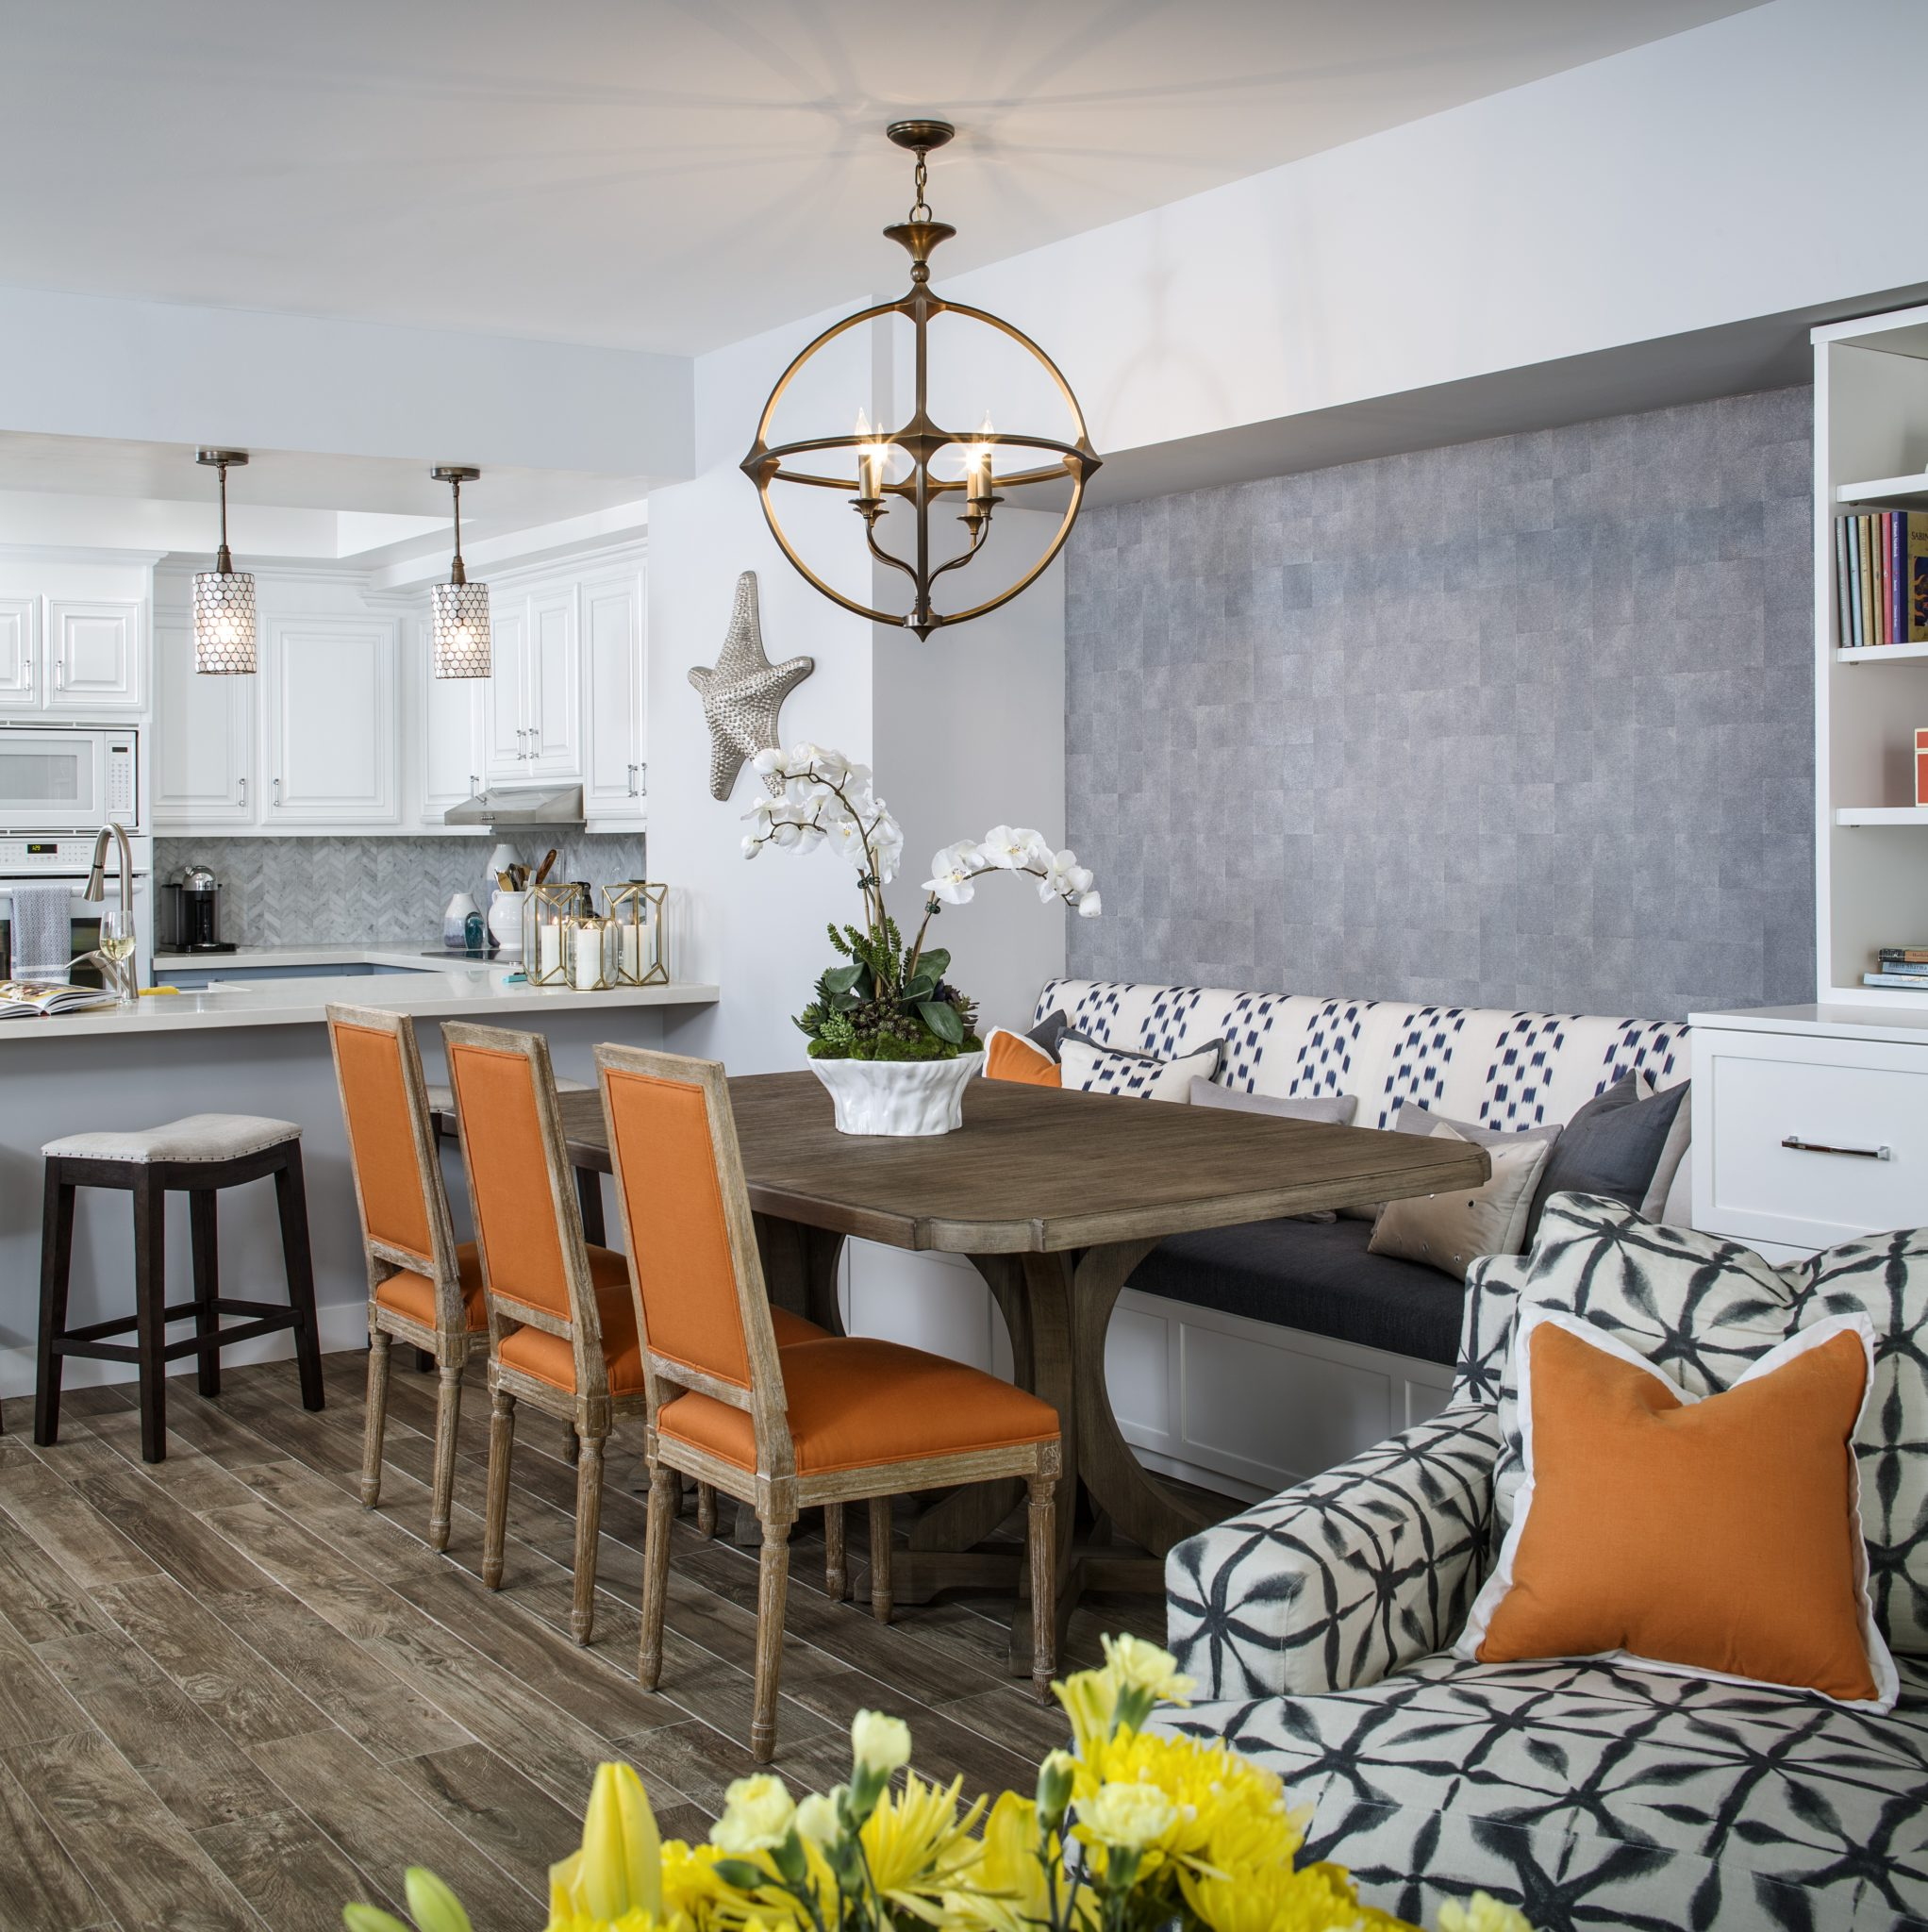 Comfy casual dining - built-in banquet andcounter seating by SUZA DESIGN